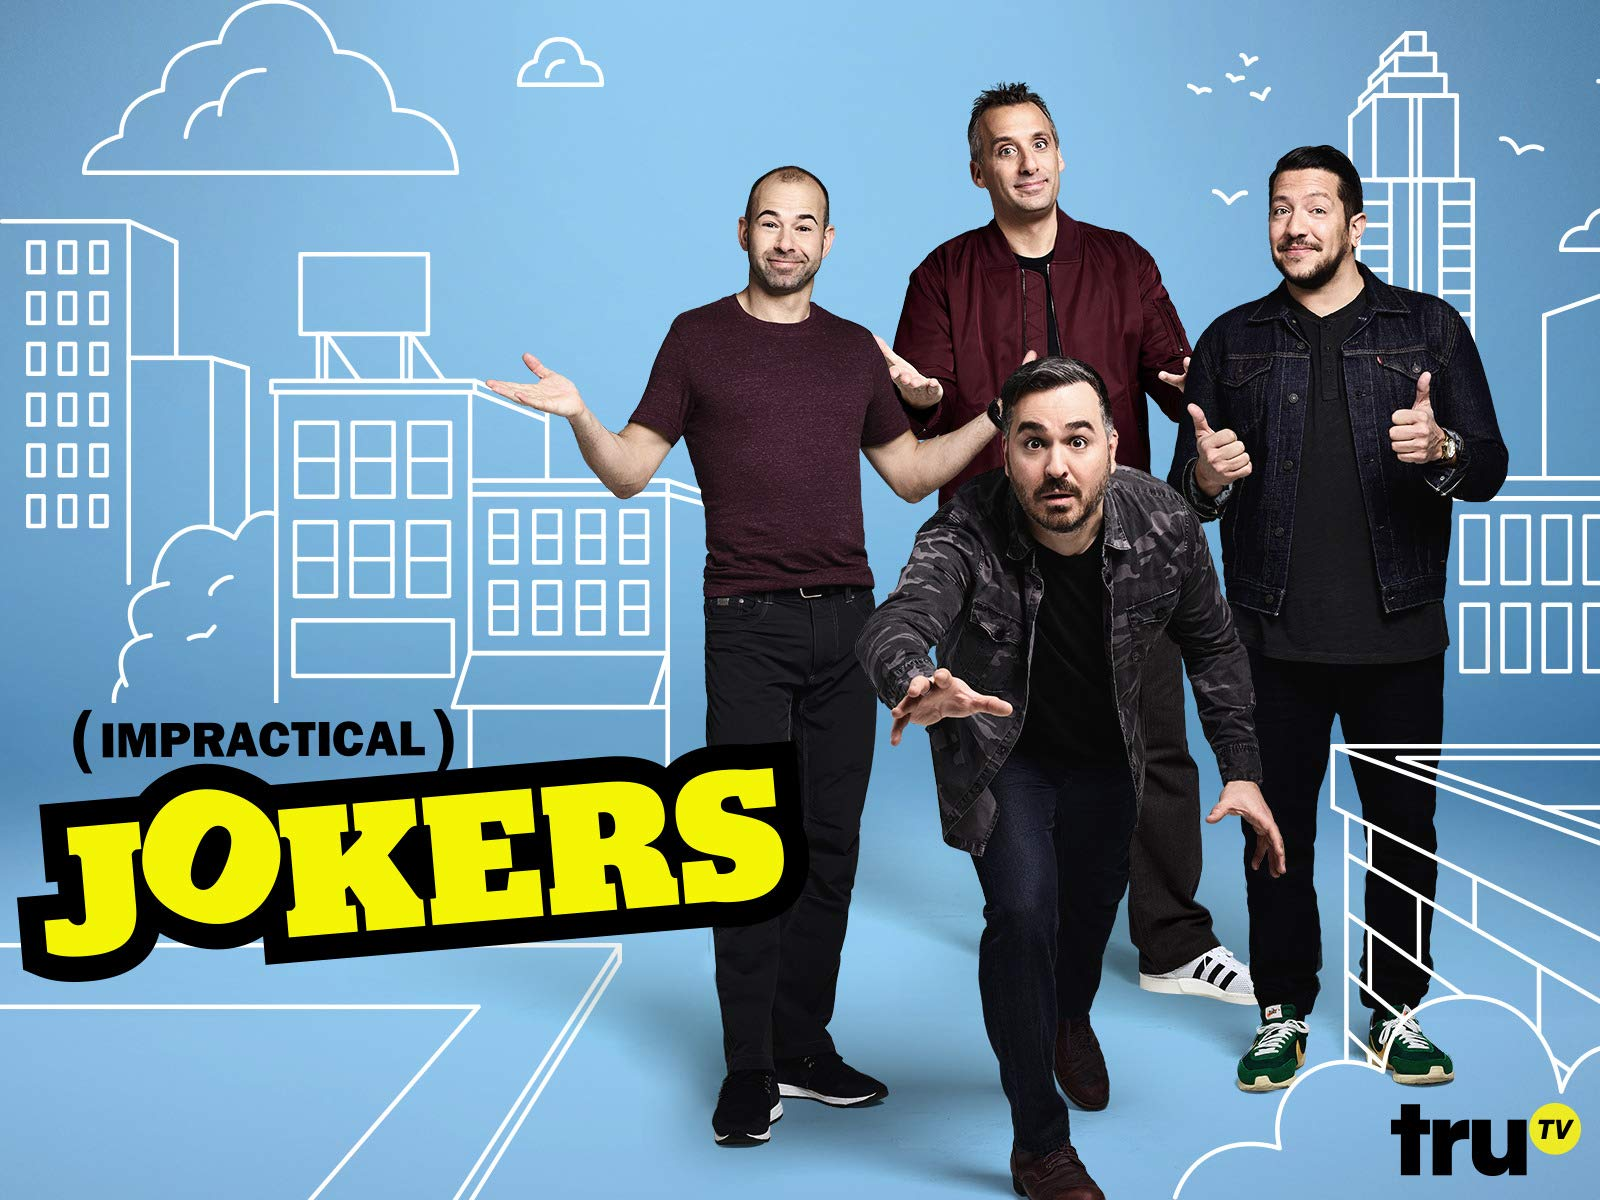 Impractical Jokers 9: Release Date and More Updates!